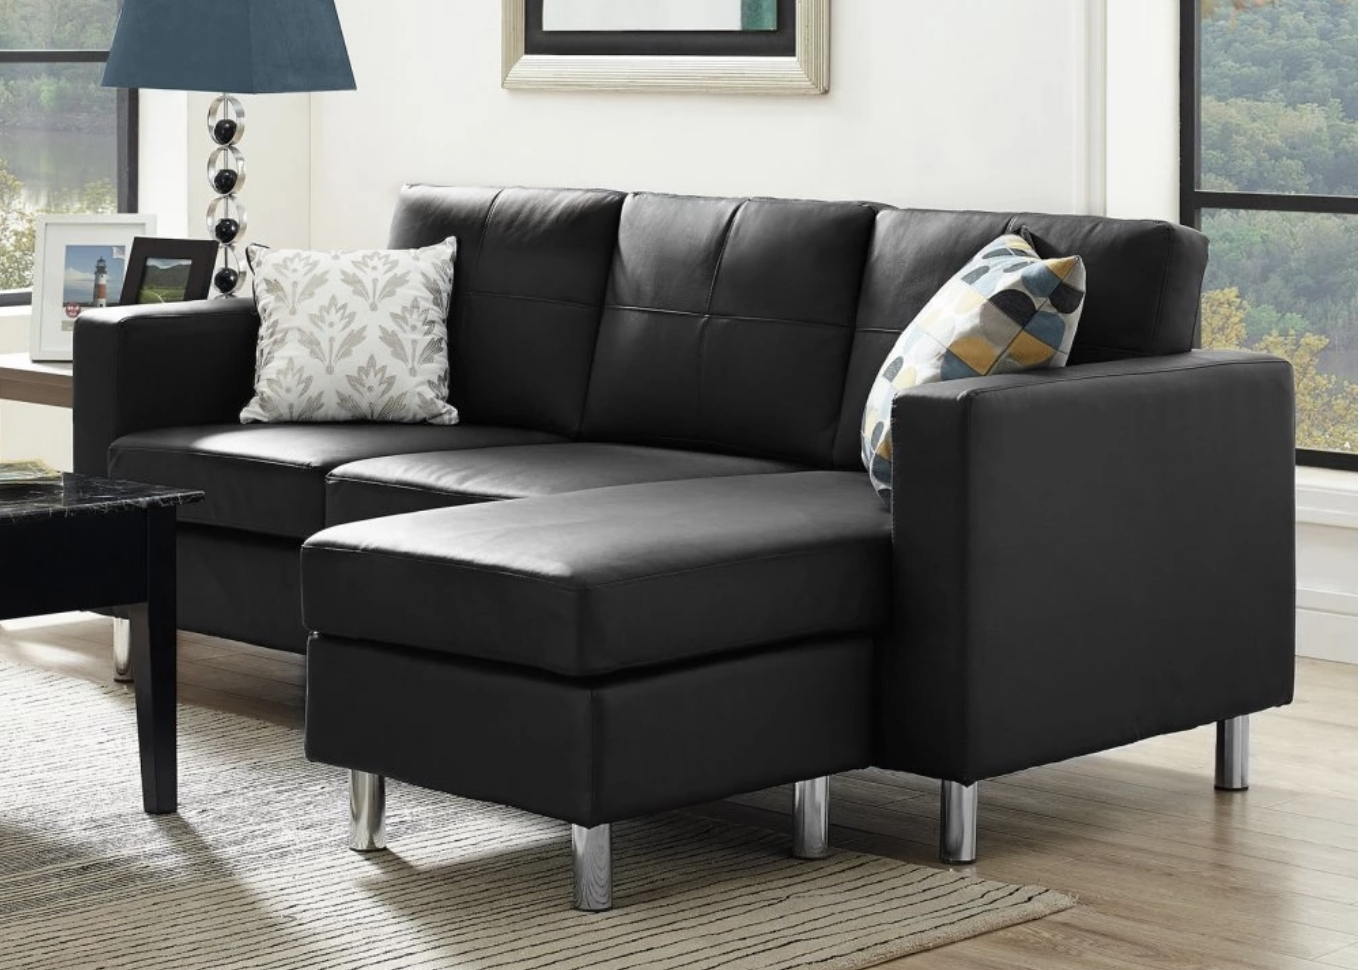 Small Spaces Sectional Sofas Intended For Famous 75 Modern Sectional Sofas For Small Spaces (2018) (View 9 of 15)